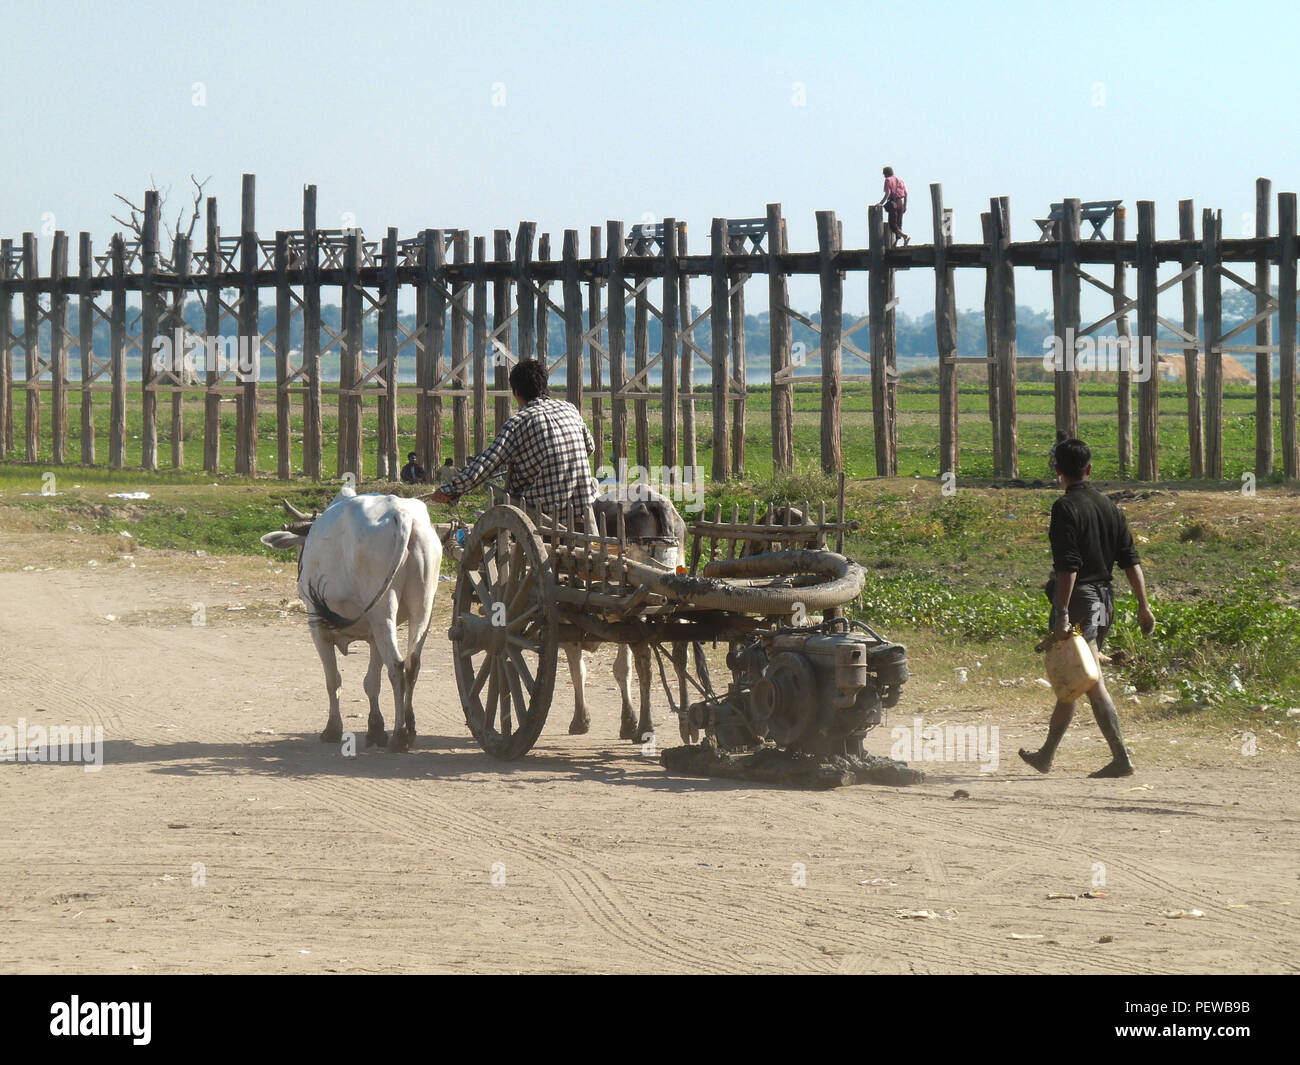 Landscape view of the U Bein Bridge in Amarapura, Myanmar, with locals on an old Ox cart in the foreground - Stock Image